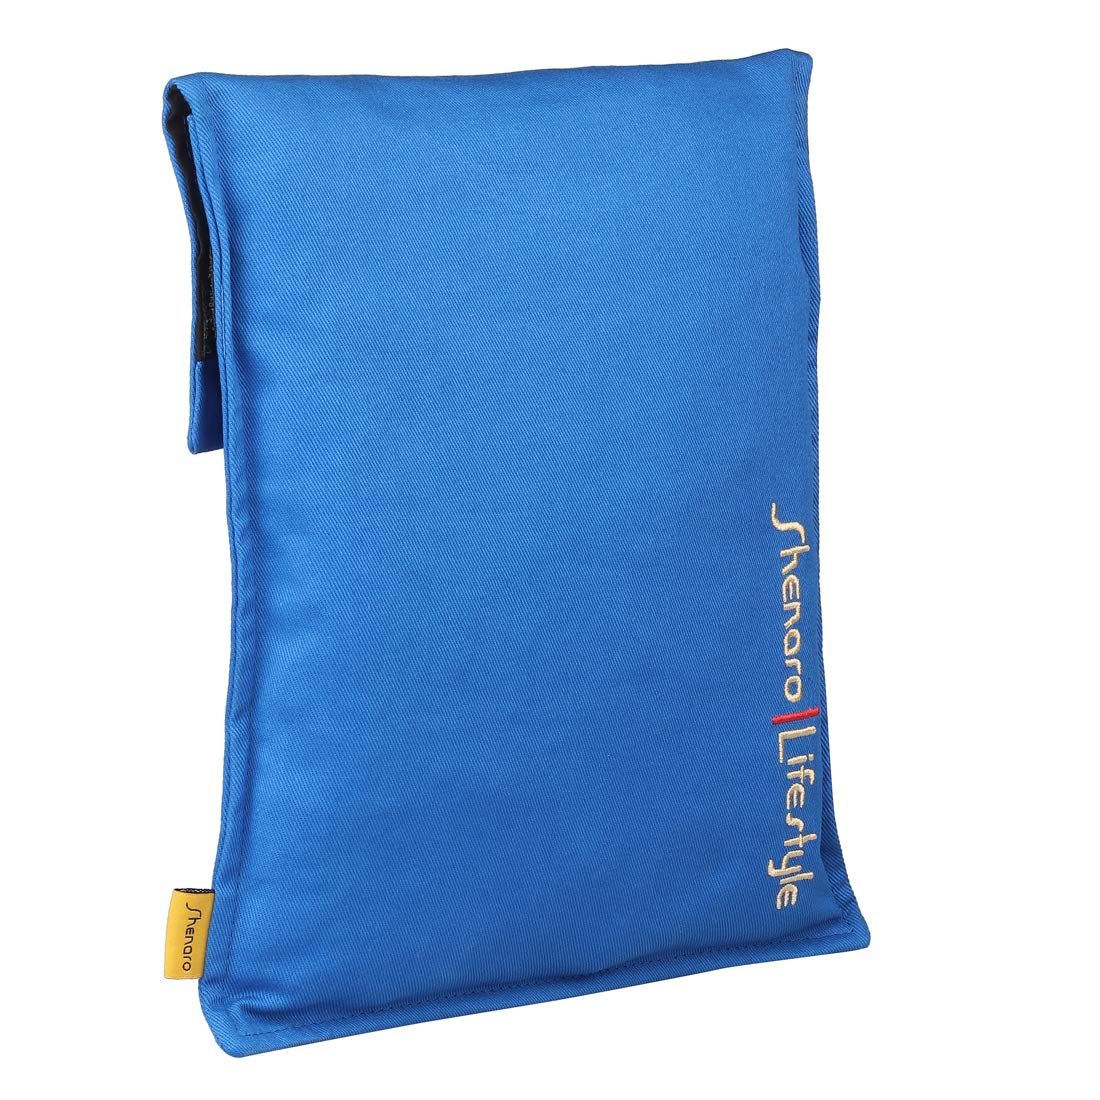 Cotton Organic and Eco-Friendly Pain Relief Wheat Bag with Treated Whole Grains and Lavender Shenaro Lifestyles Royal Blue